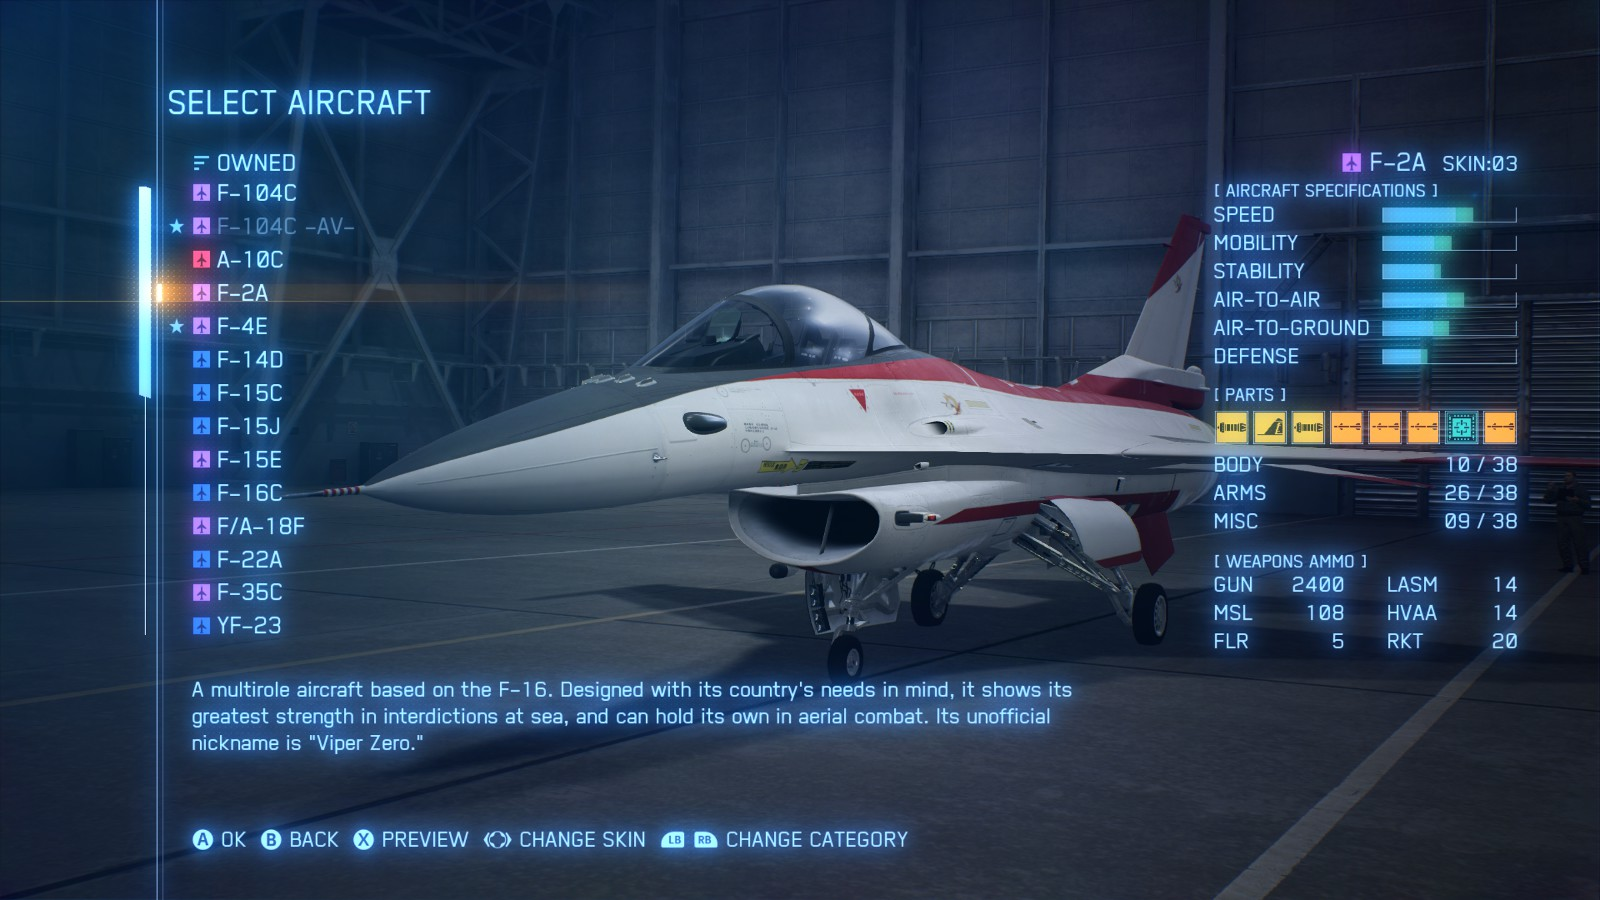 Steam Community Guide All Aircraft Skins Unlocks Detailed And Clear